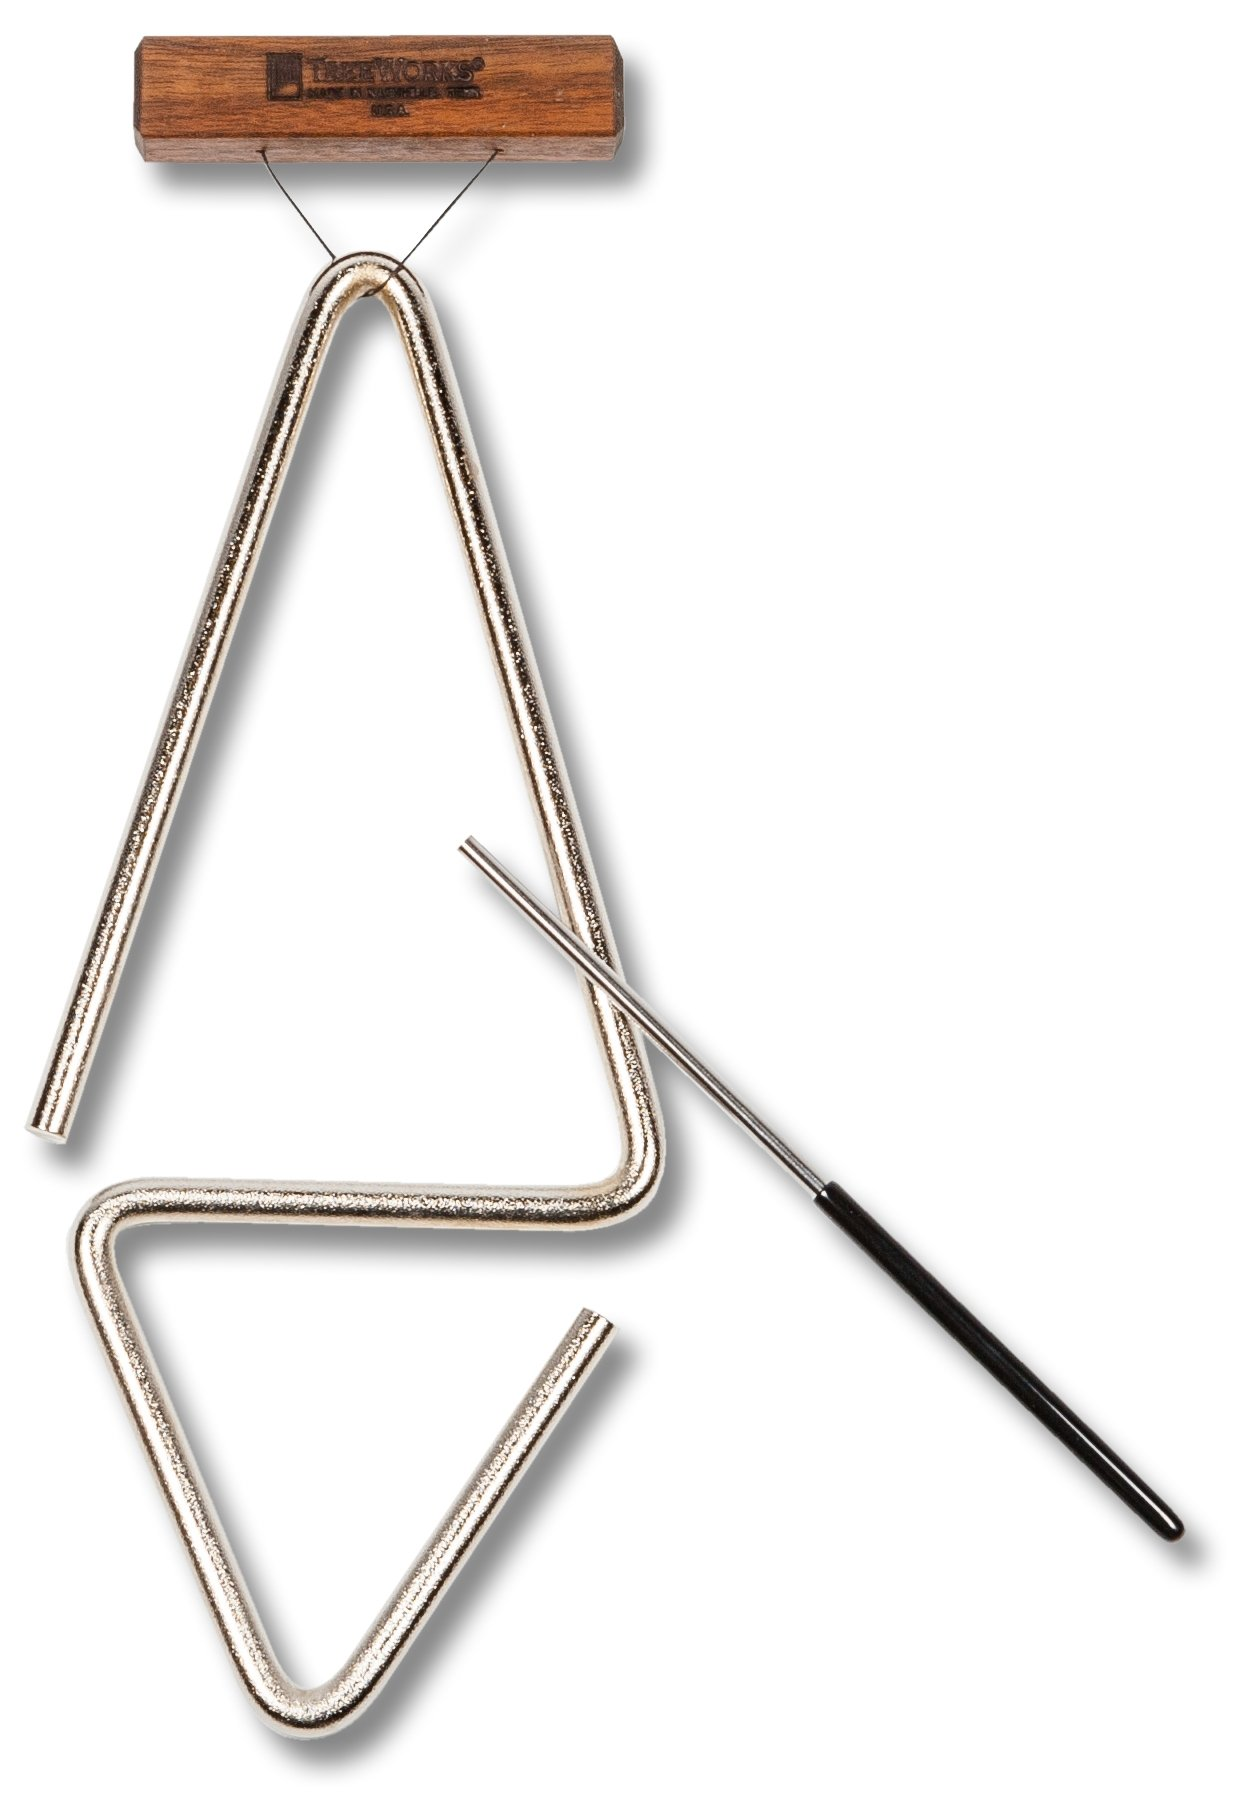 TreeWorks Chimes TRE1d Made in USA Double-Sided Studio Triangle with Holder and Beater by TreeWorks Chimes